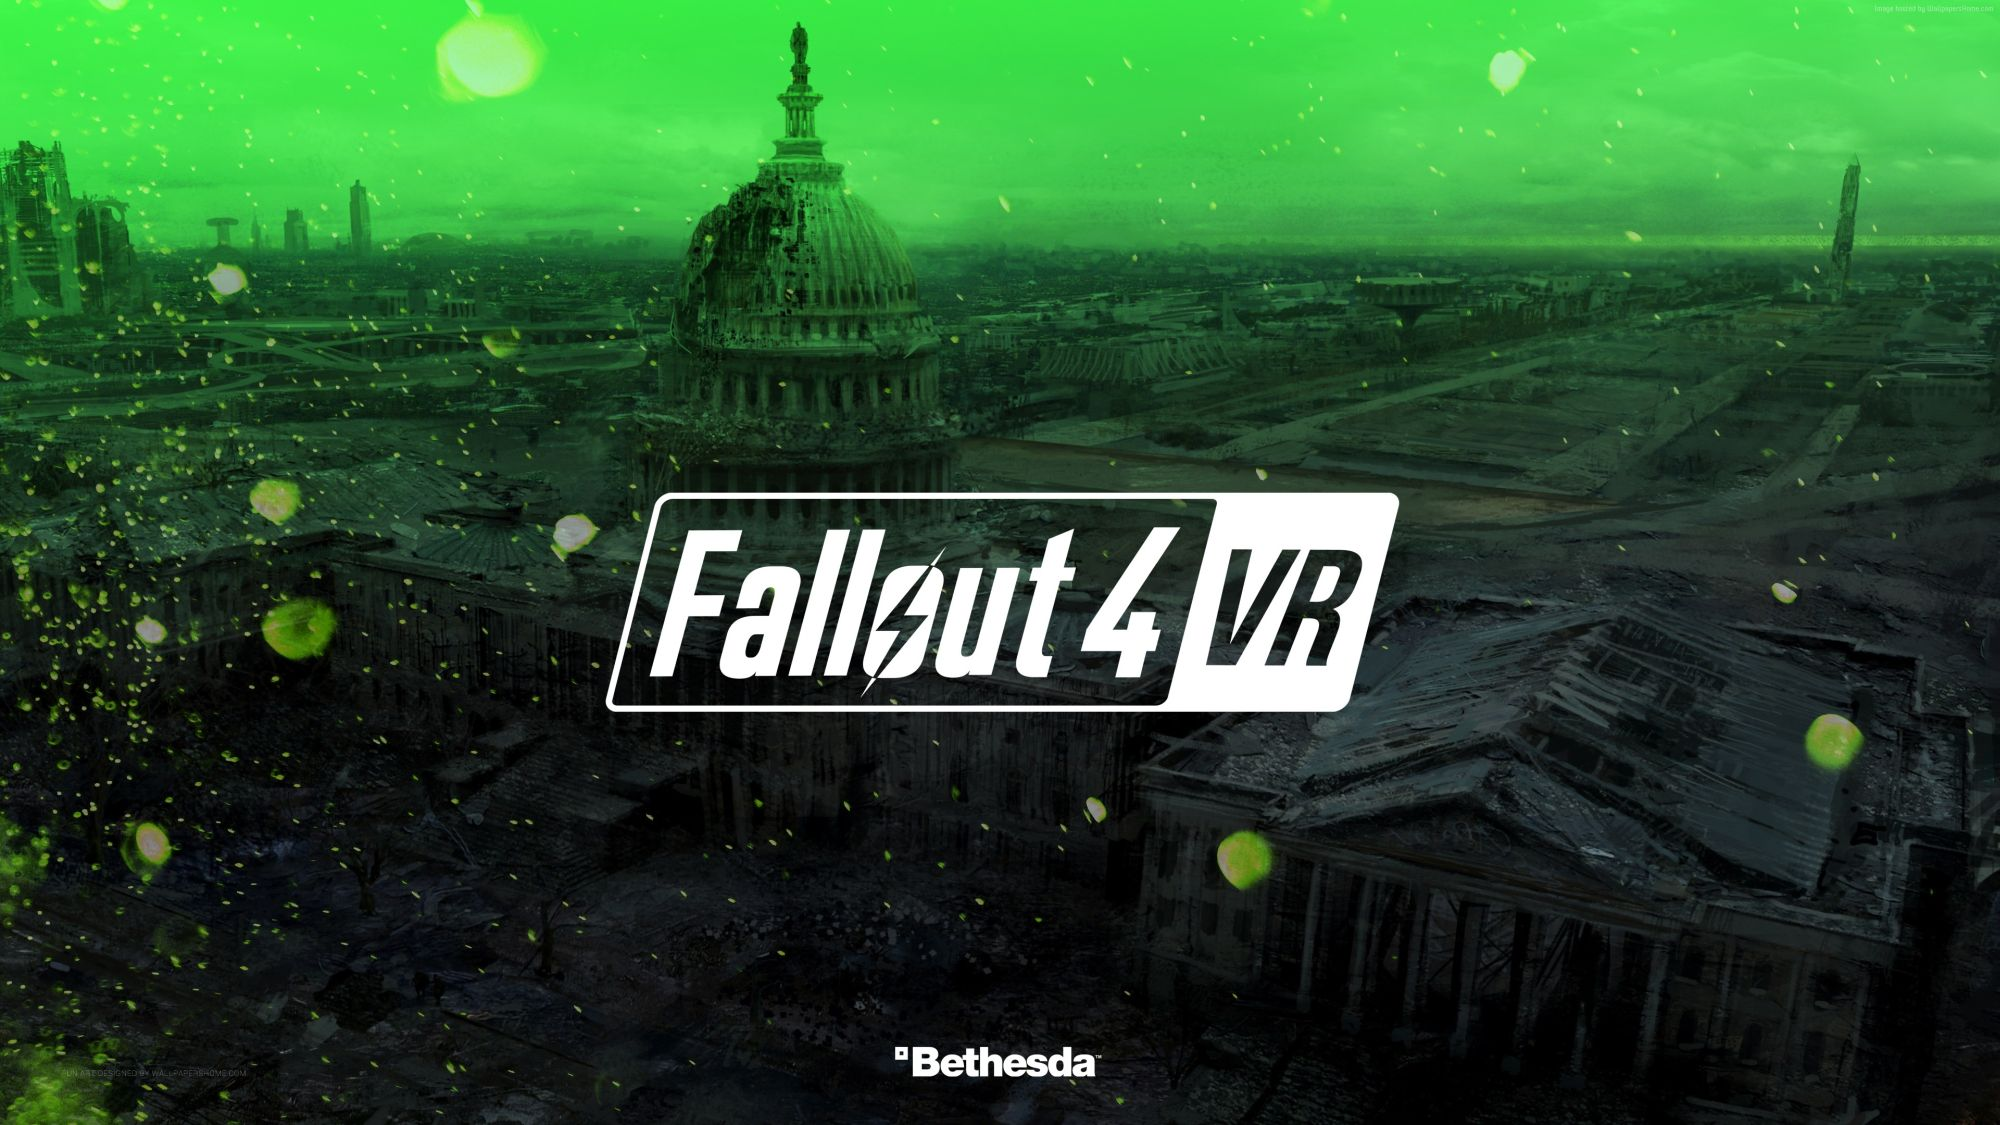 Fallout-4-VR-4K-Wallpaper